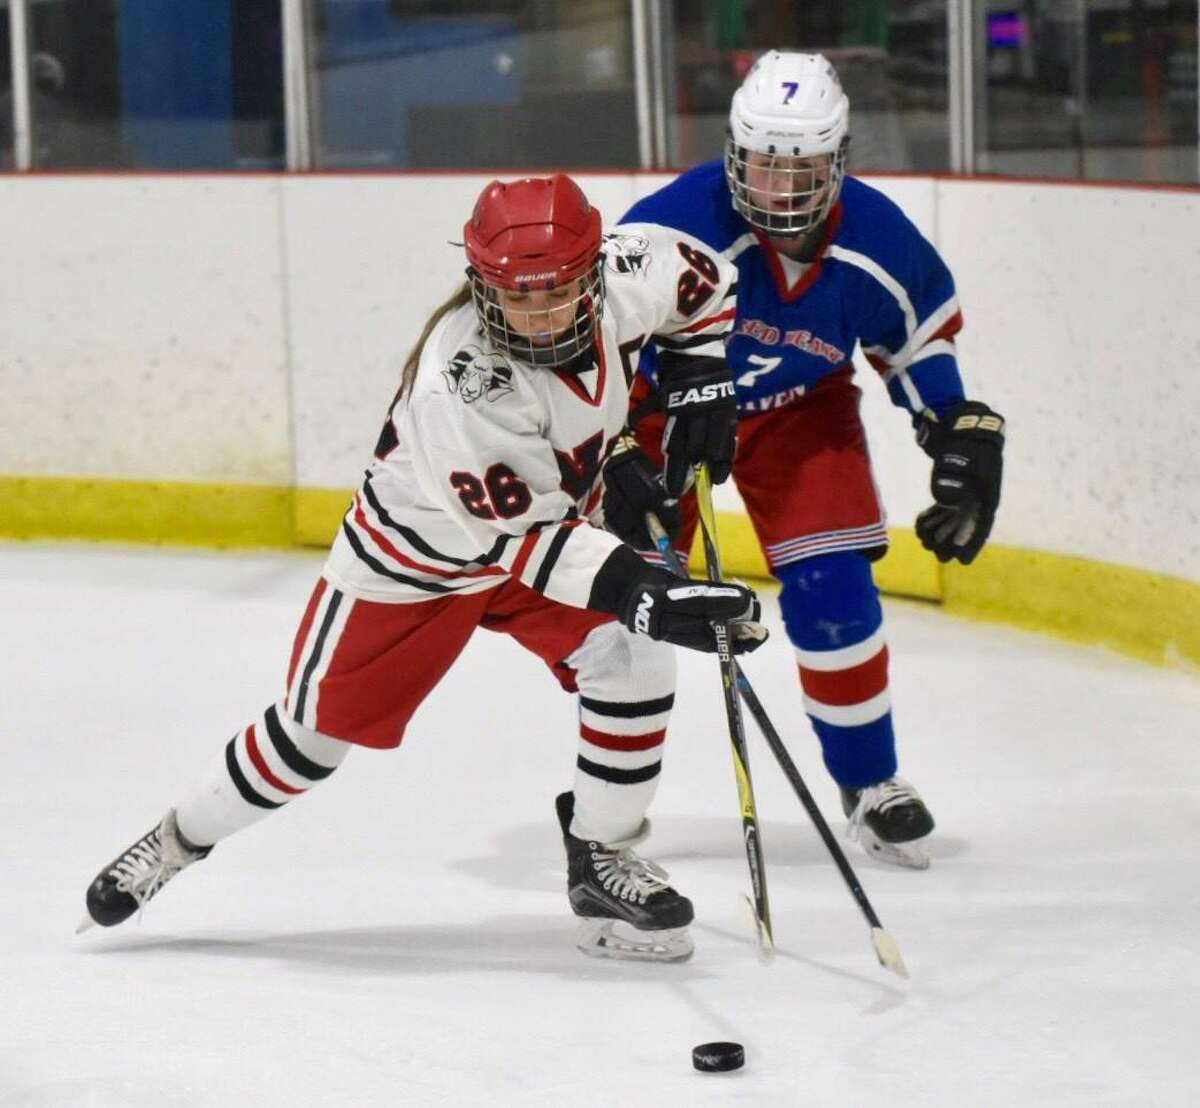 New Canaan's Sophie Potter (26) gets to the puck in front of West Haven/SHA's Jenna Hunt (7) on Monday.